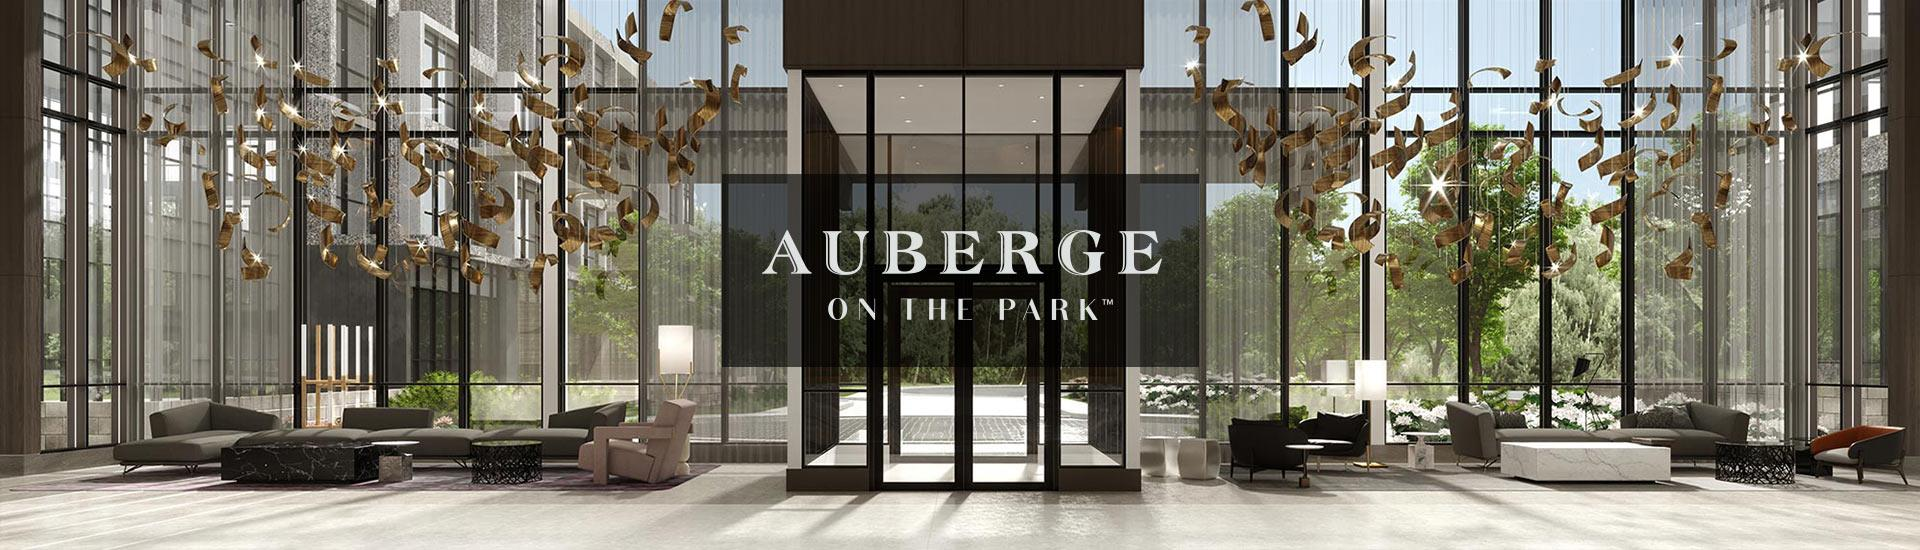 Auberge On The Park - Interior Lobby Render